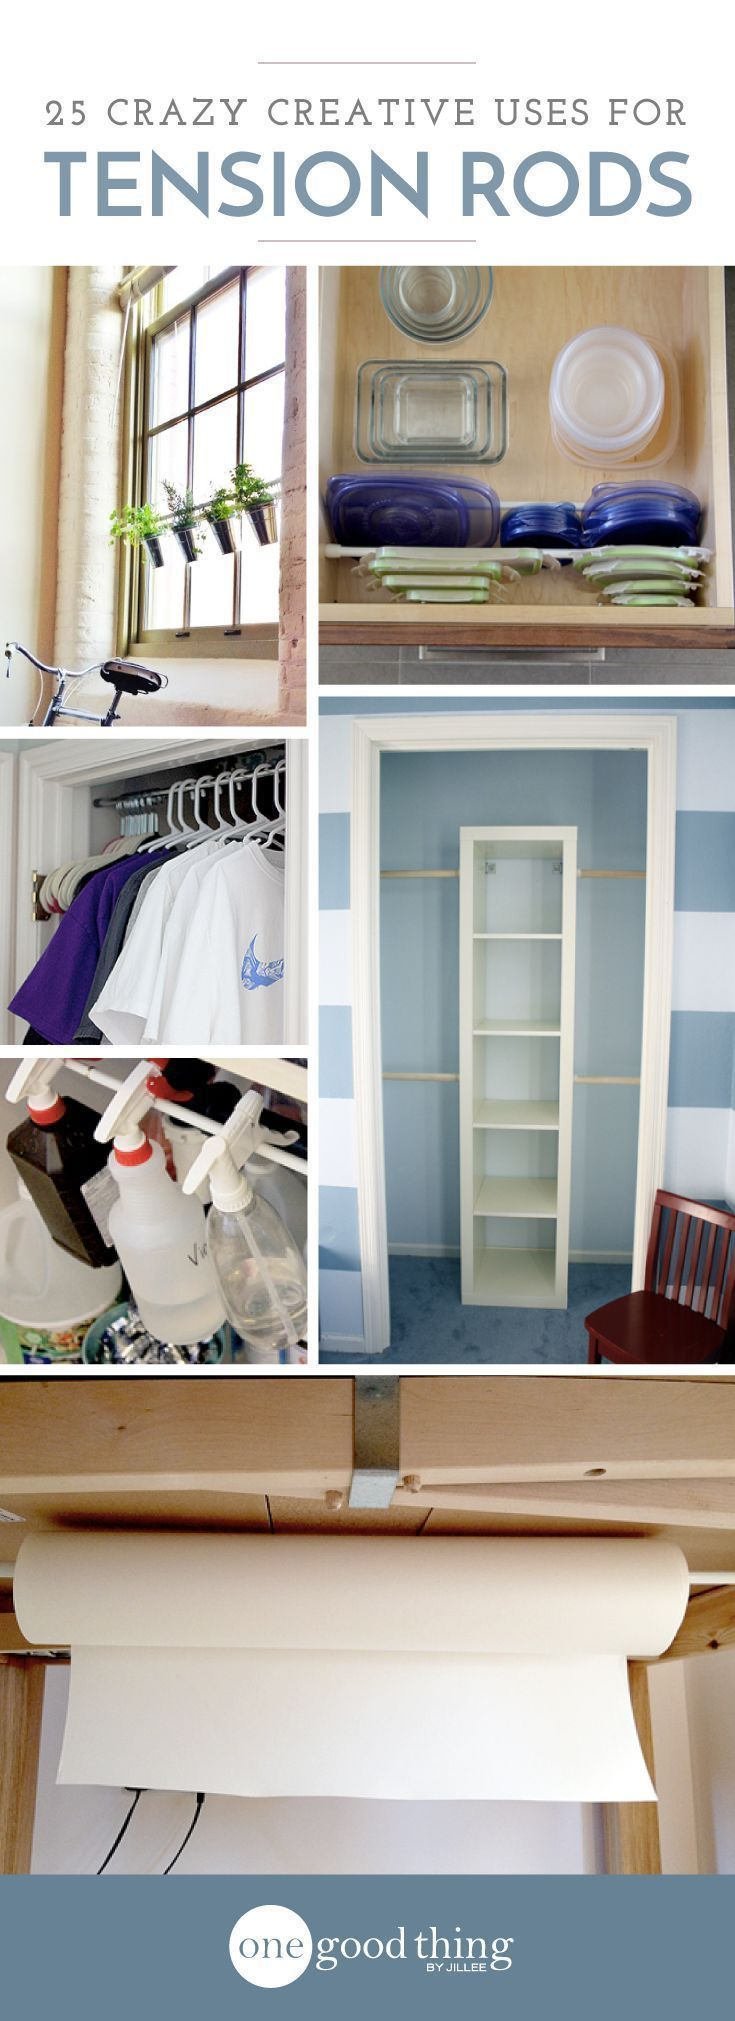 ... Valet Bar And Closet Bar Solutions. 25 Crazy Creative Uses For Tension  Rods